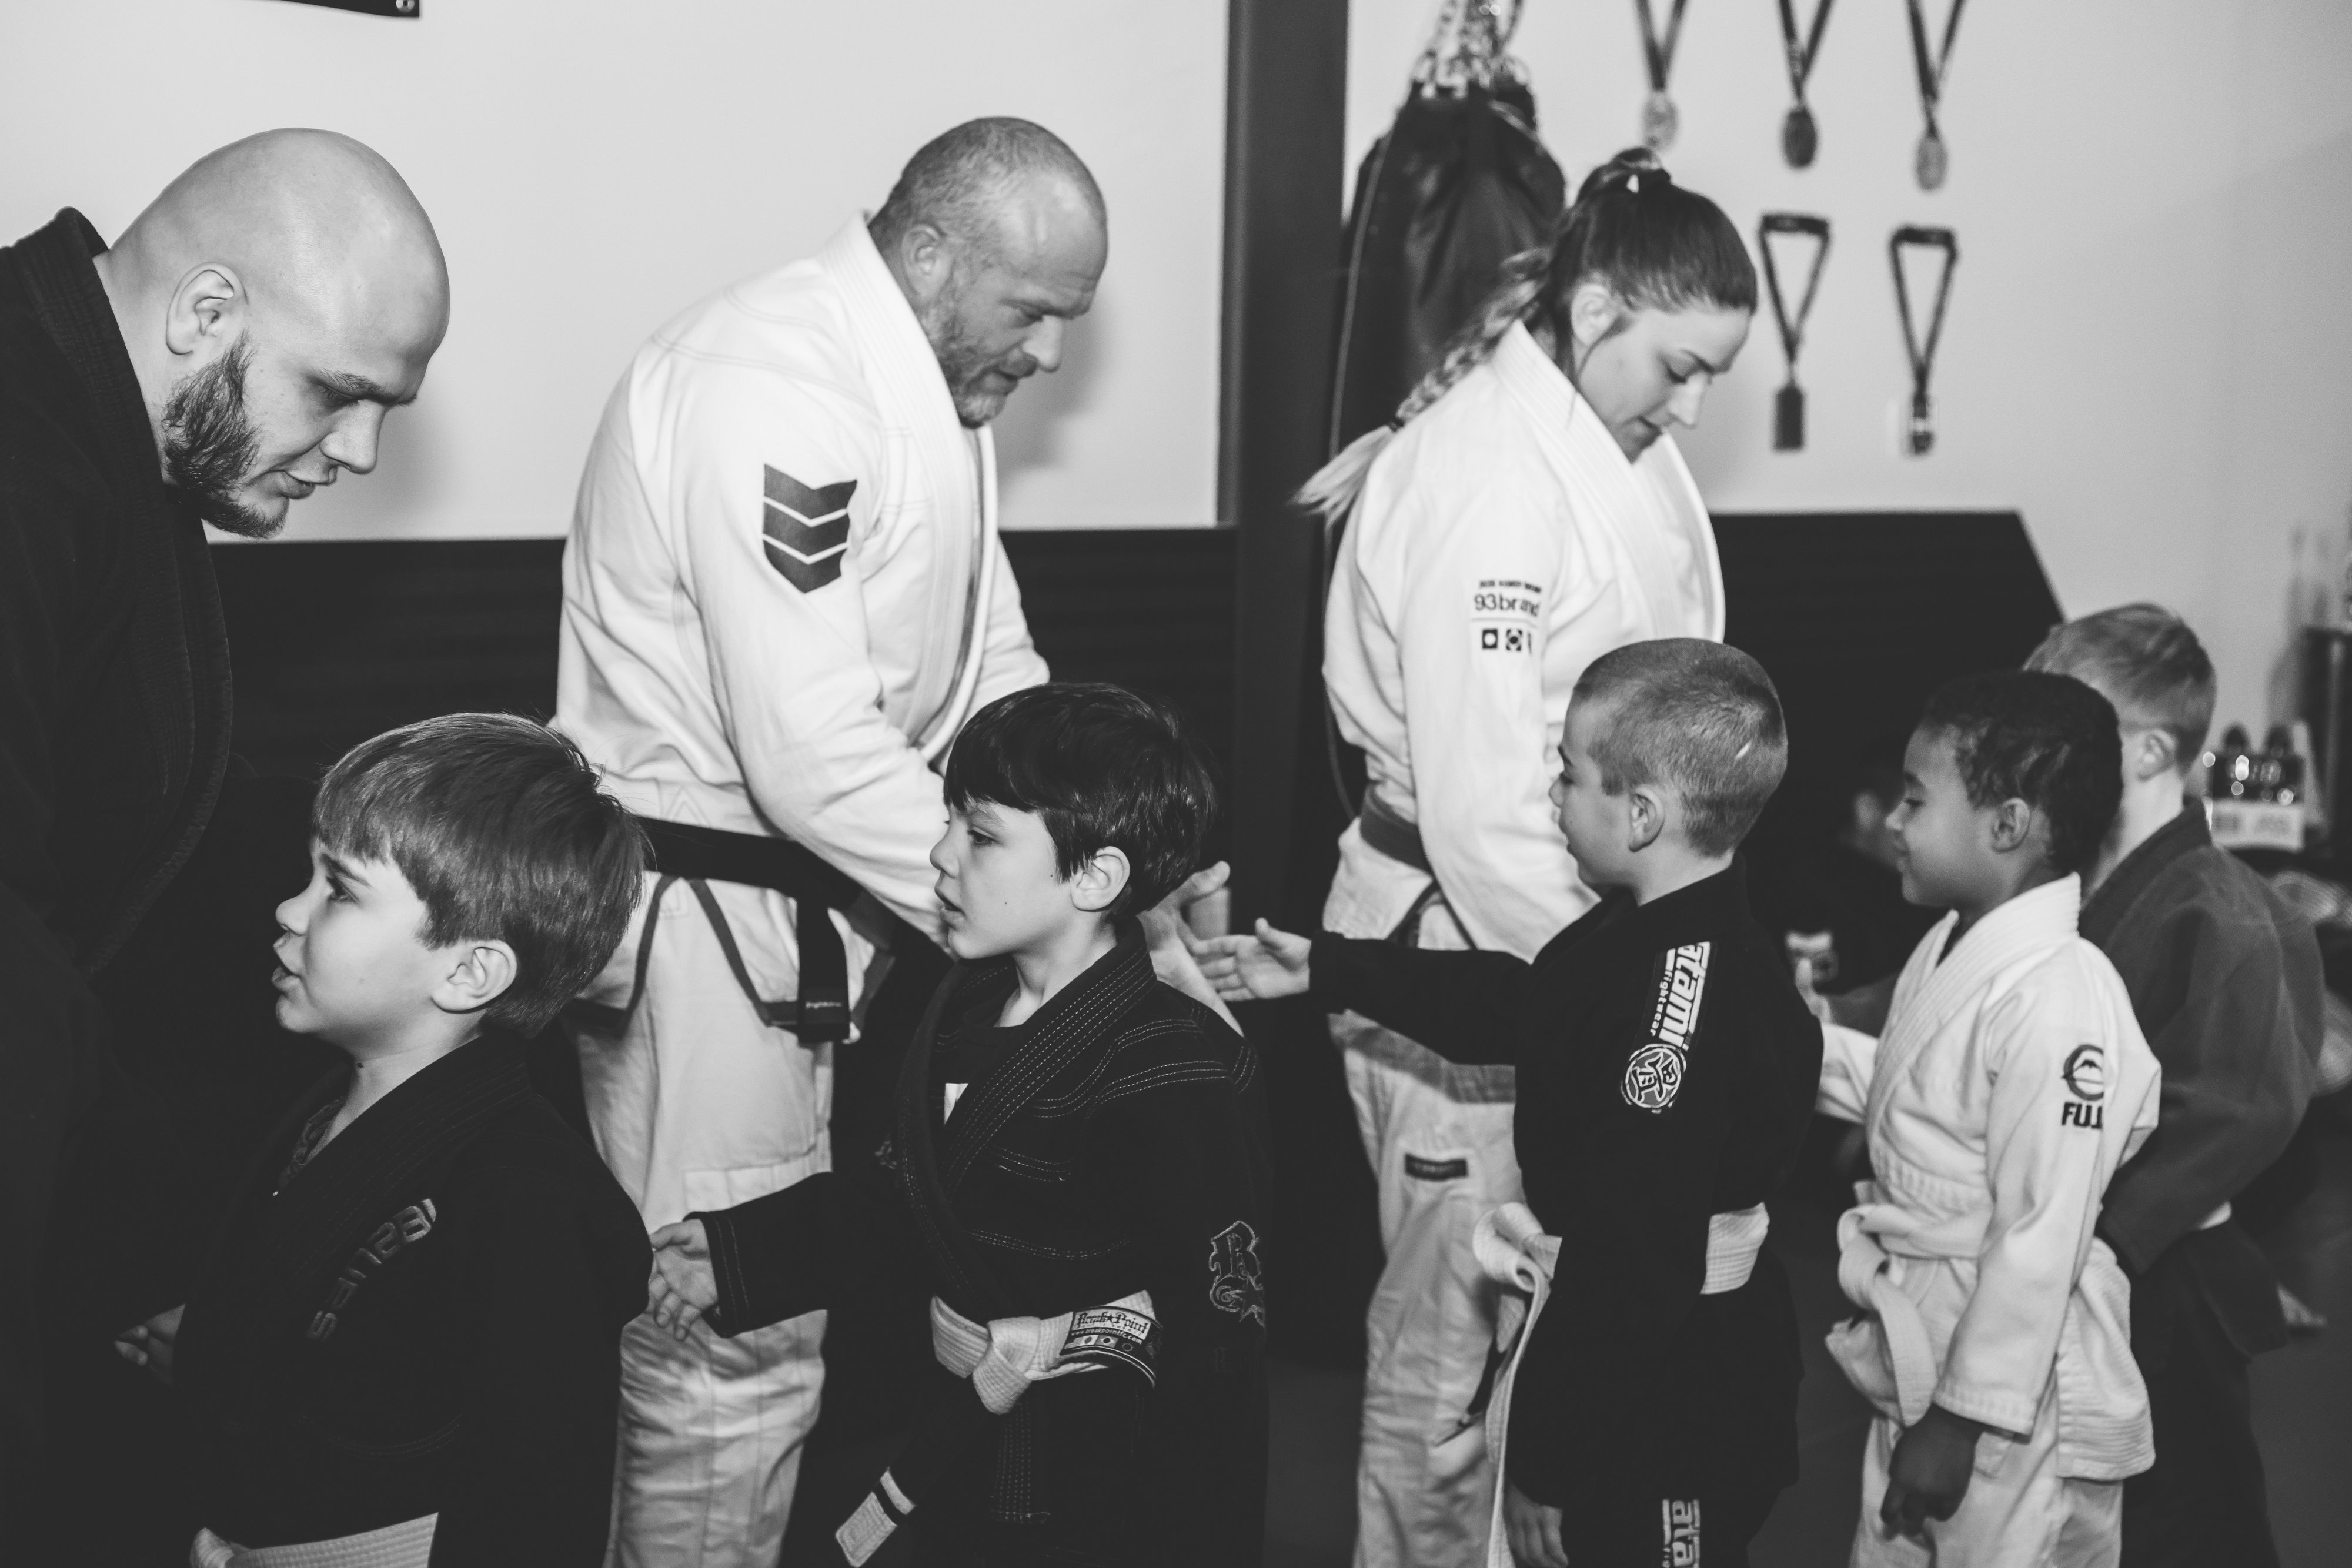 Dominion Kids BJJ shaking hands after class